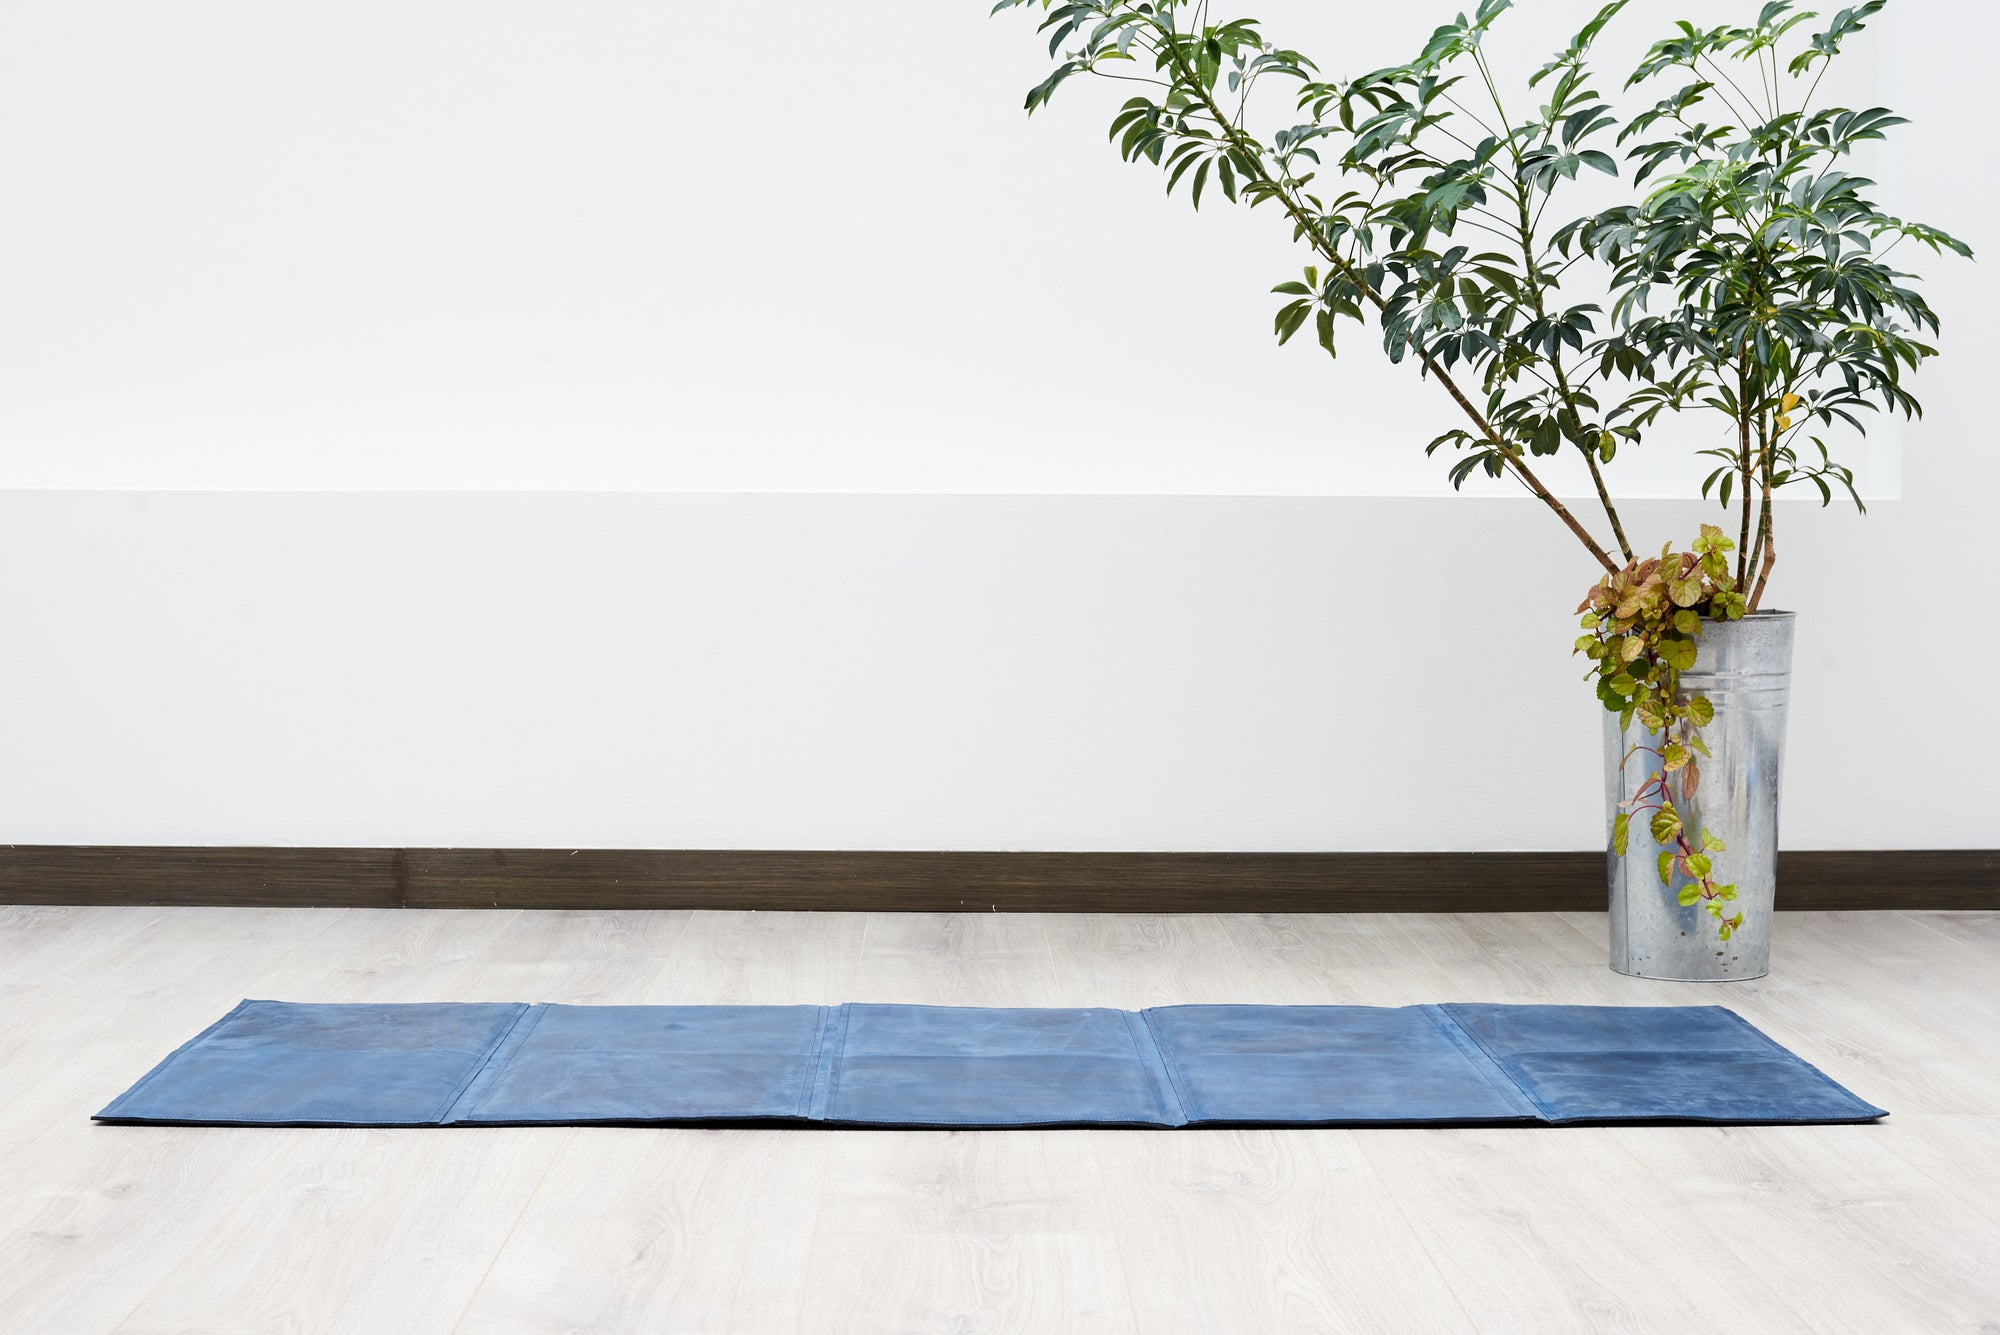 Exercise. Leather Yoga Mat Navy by Modoun